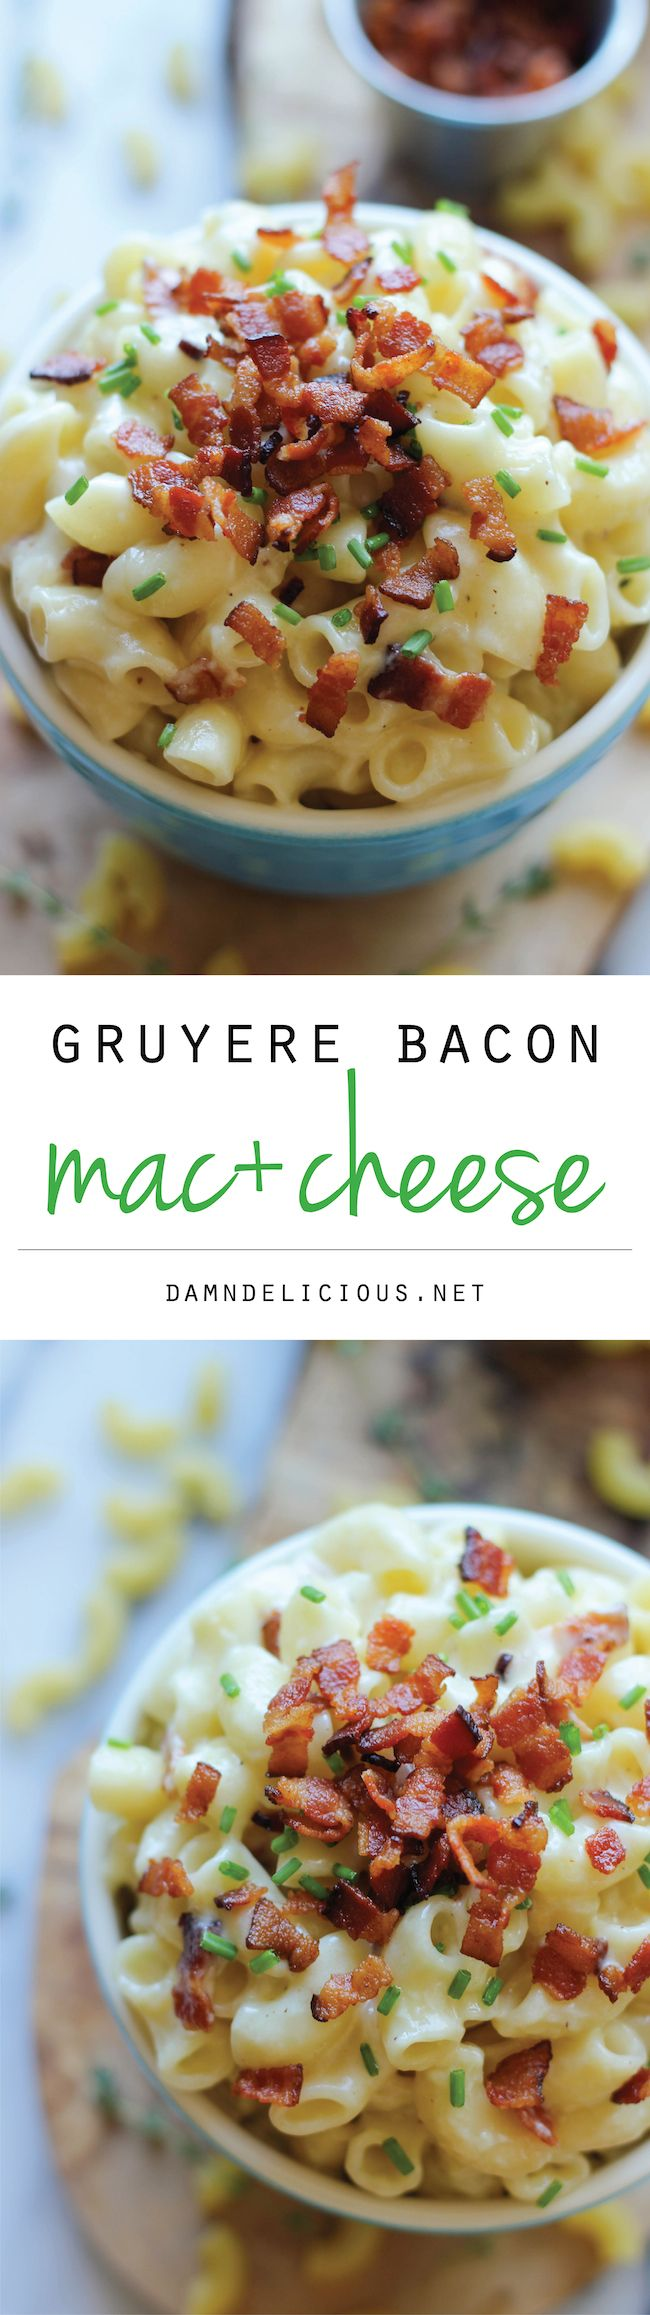 Gruyere Bacon Mac and Cheese This was good, just watch the garlic and I added too much cheese made it stick instead of creamy.